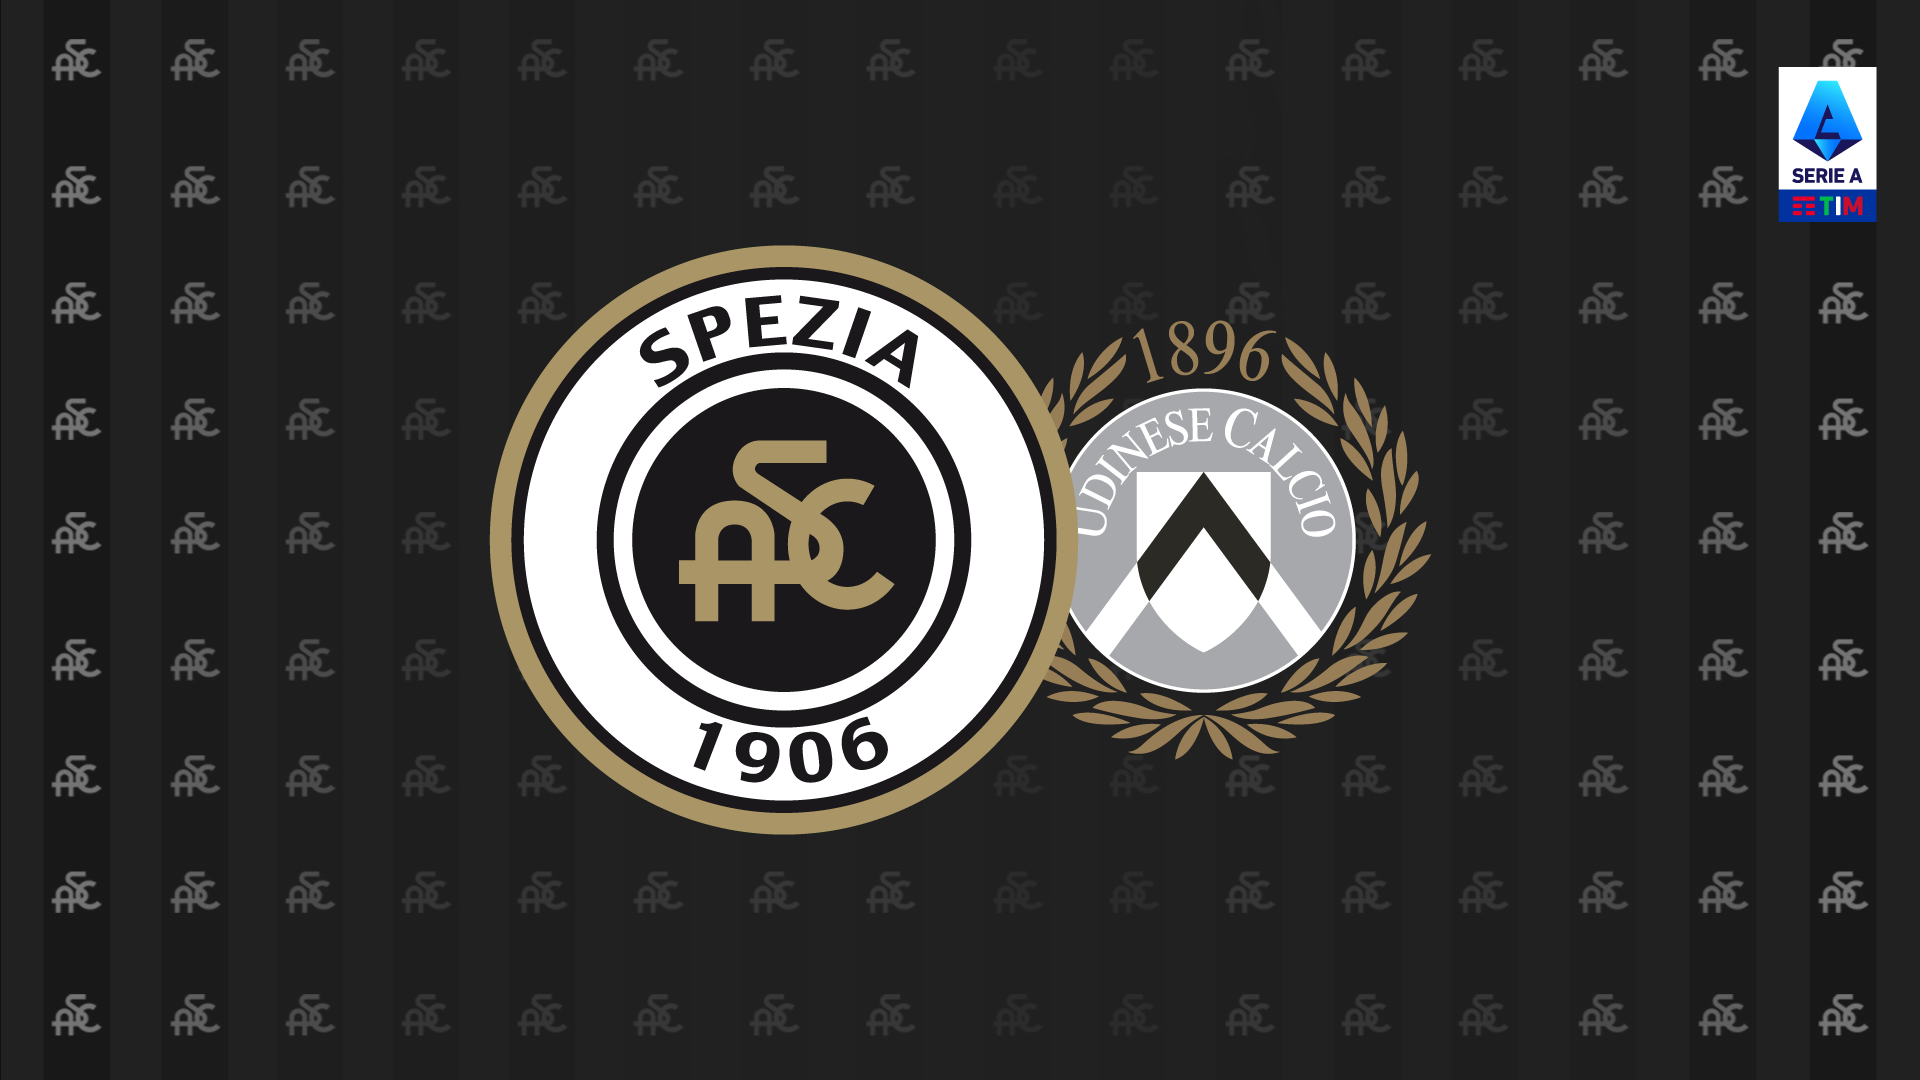 Spezia-Udinese: free tickets for all old subscribers. Free sale from 16:00